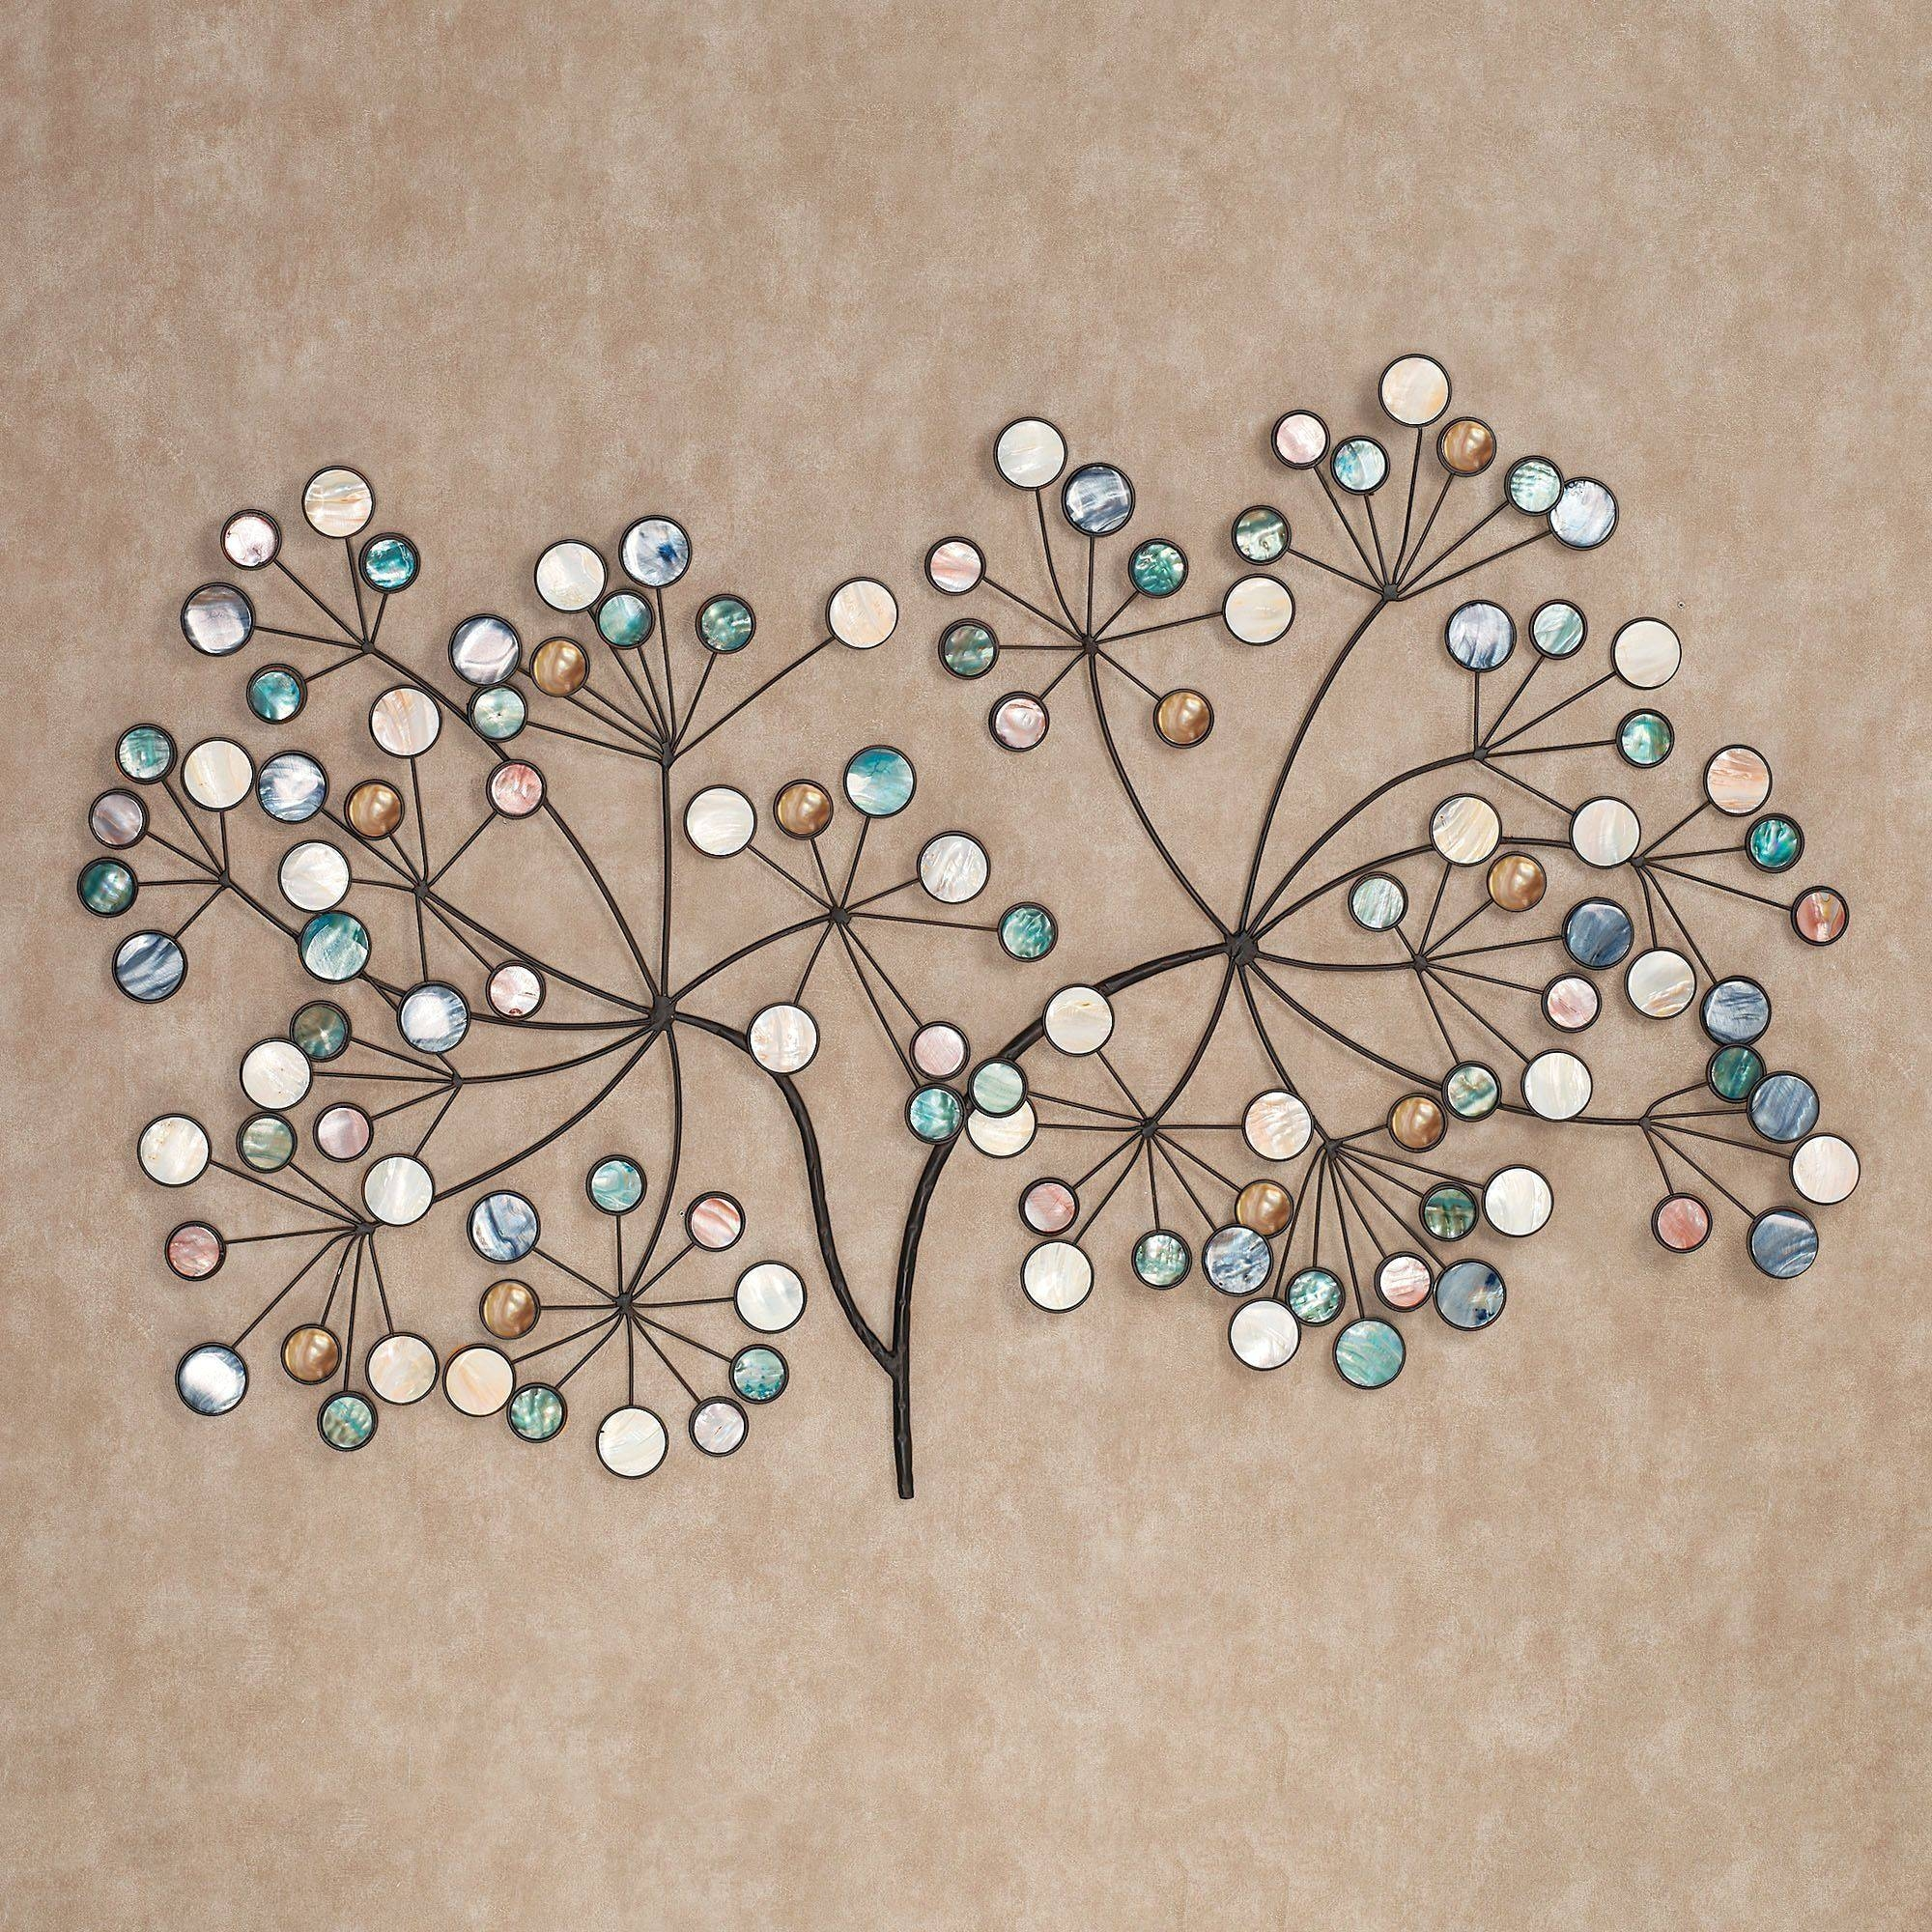 Capizia Branch Metal Wall Sculpture Art Within Most Current Metal Wall Art Branches (View 6 of 20)